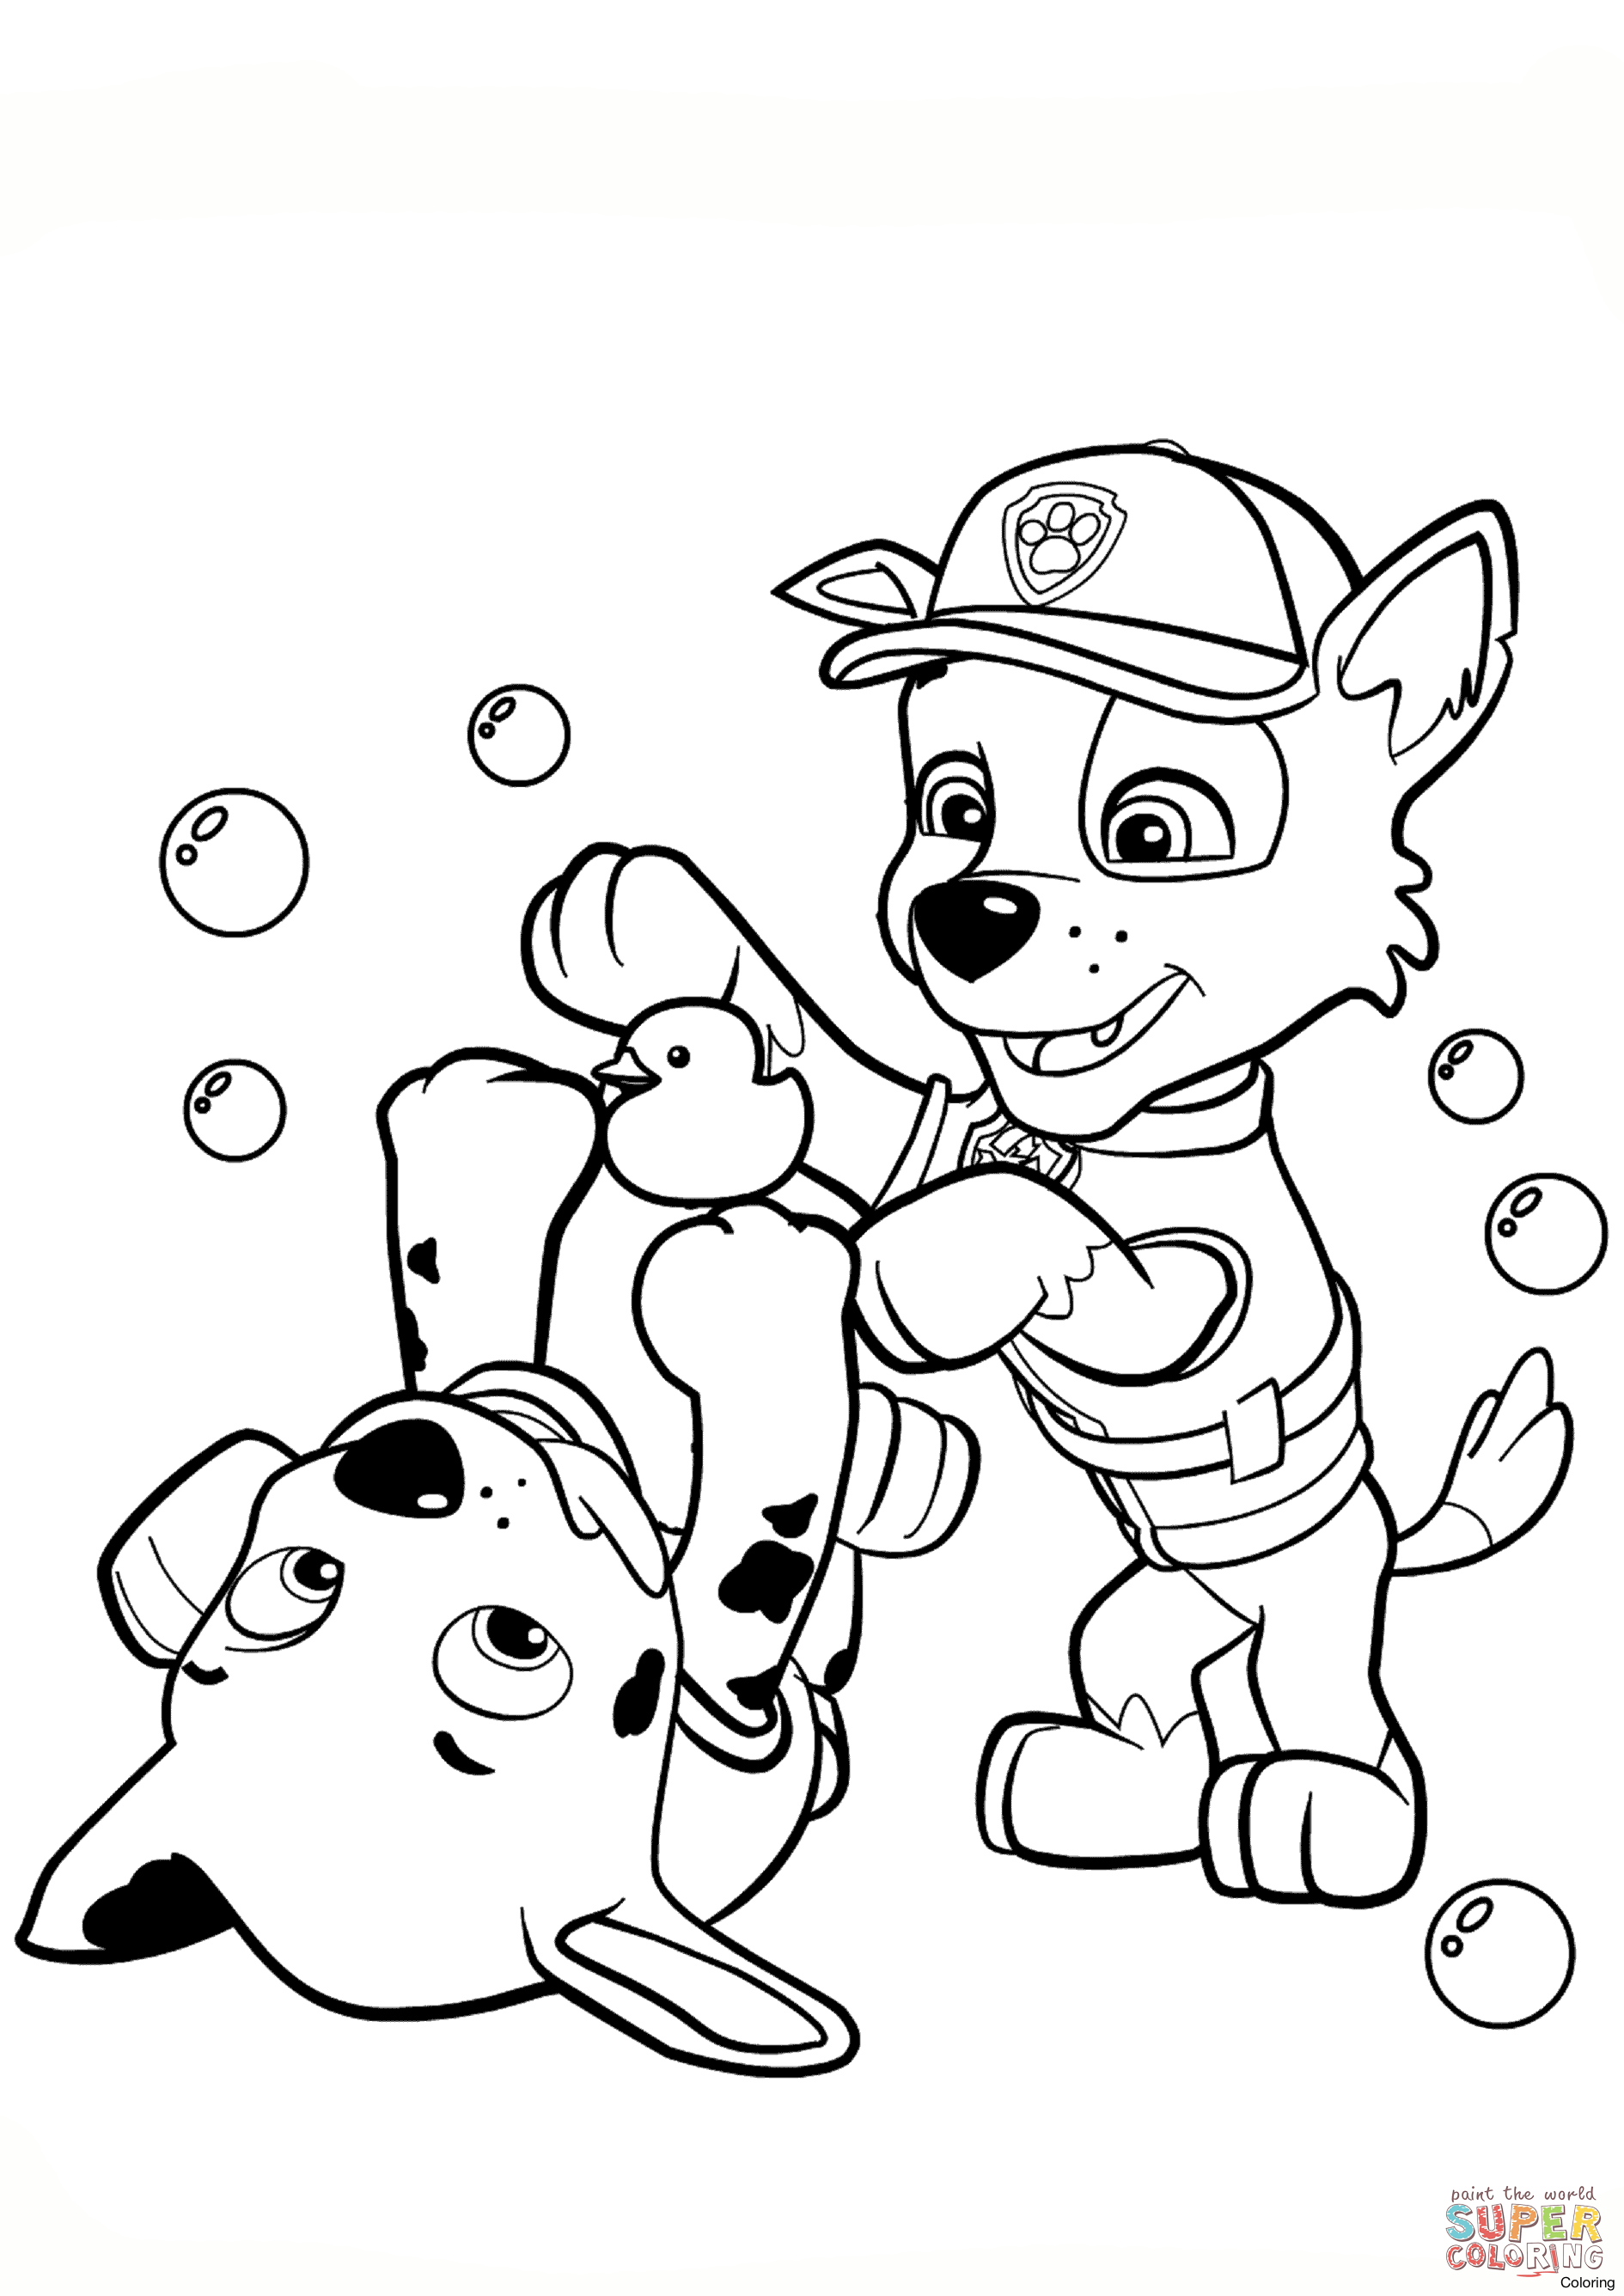 Paw Patrol Everest Ausmalbilder : Paw Patrol Chase Drawing At Getdrawings Com Free For Personal Use